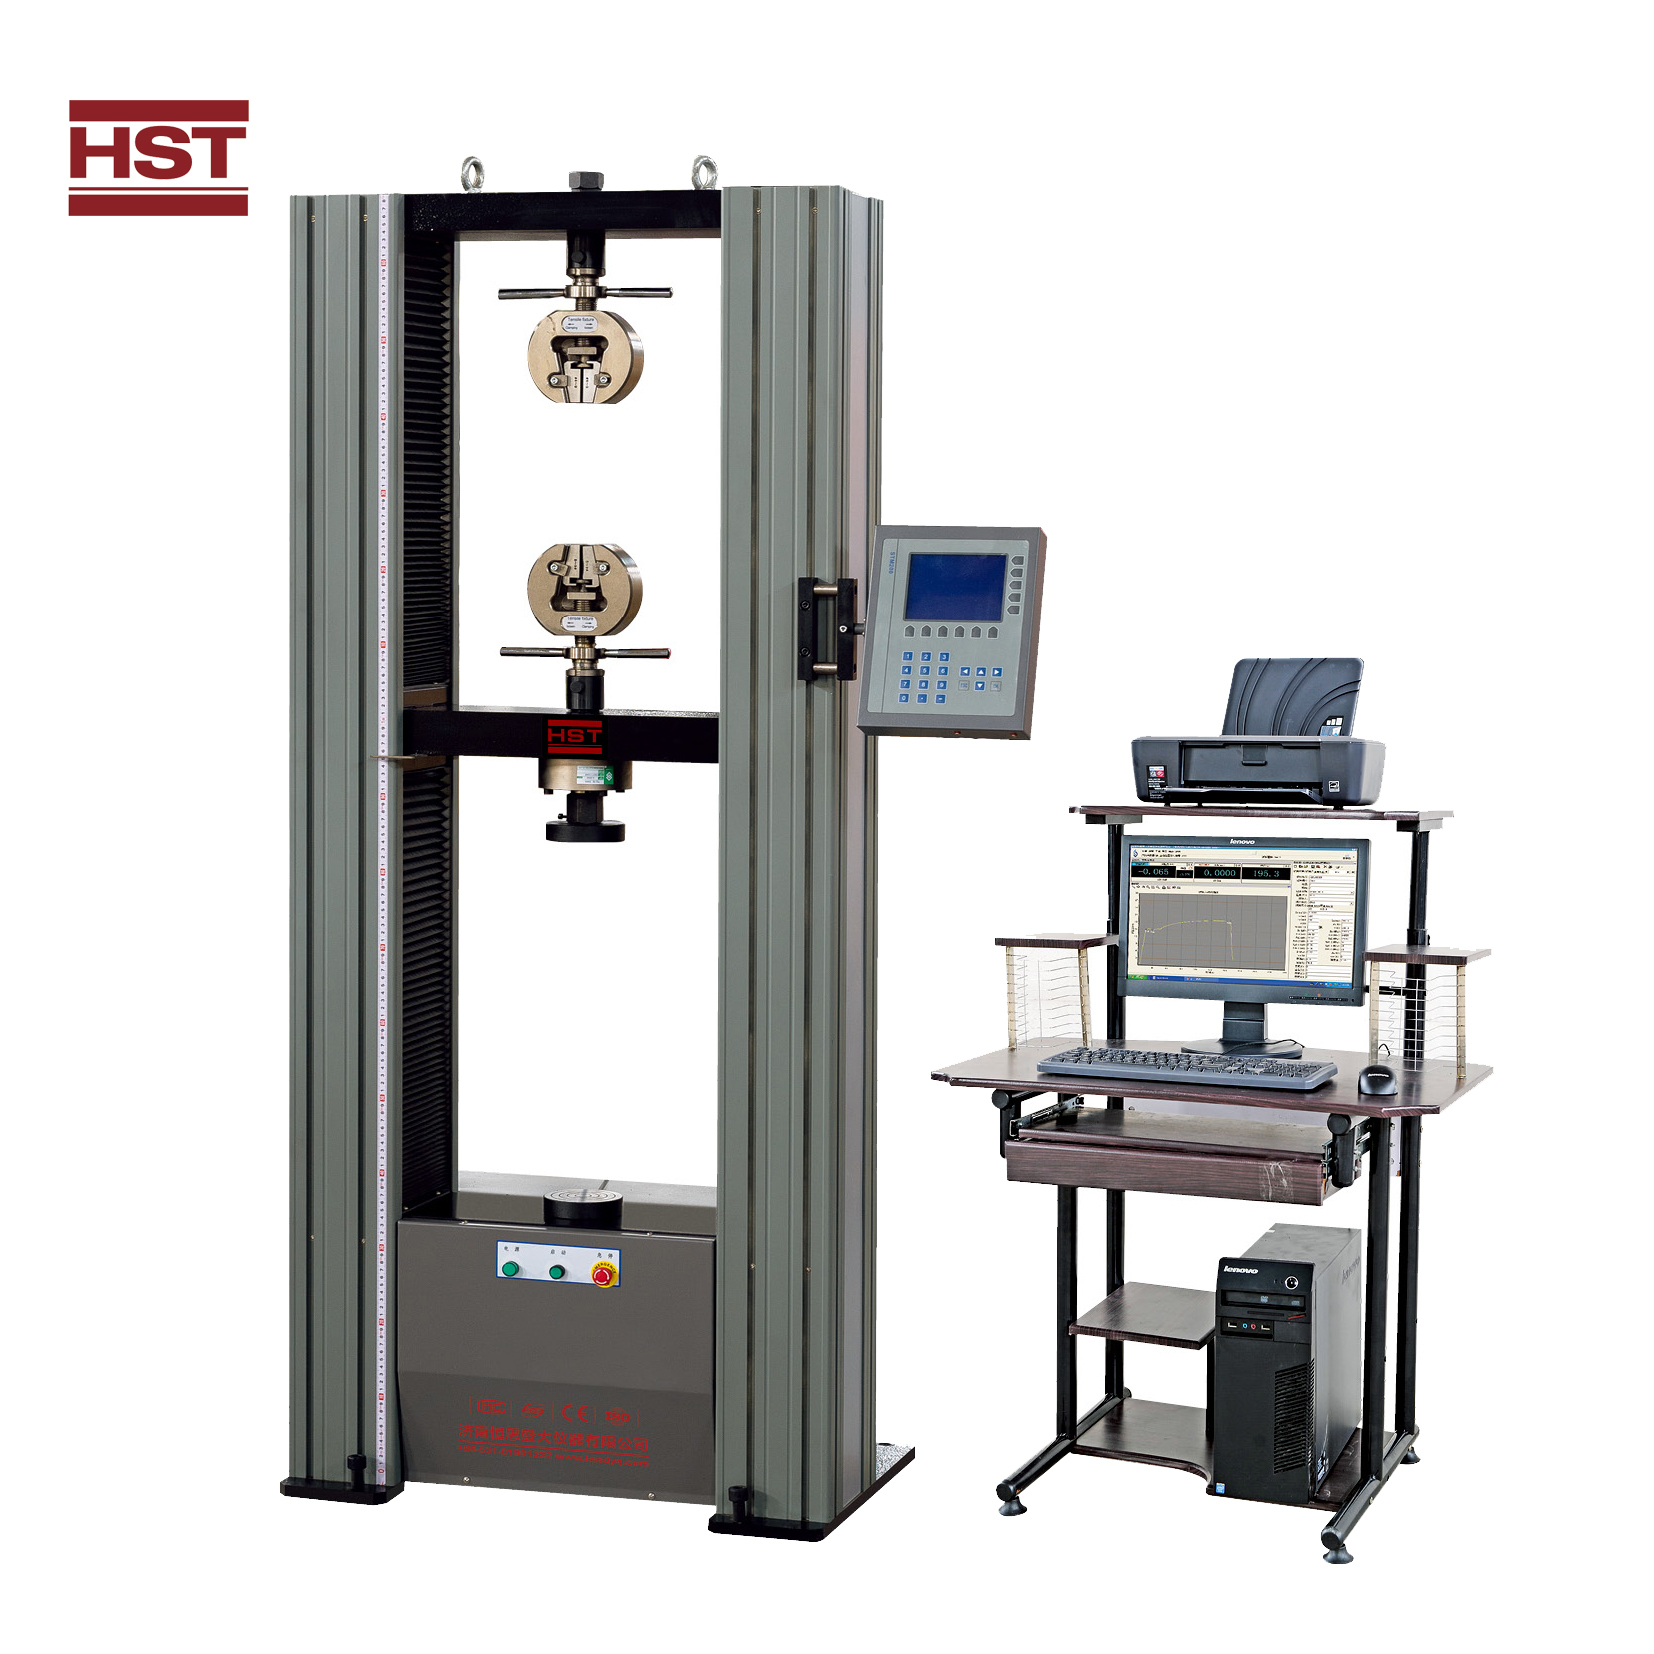 Grade bolt proof load univeral testing machine